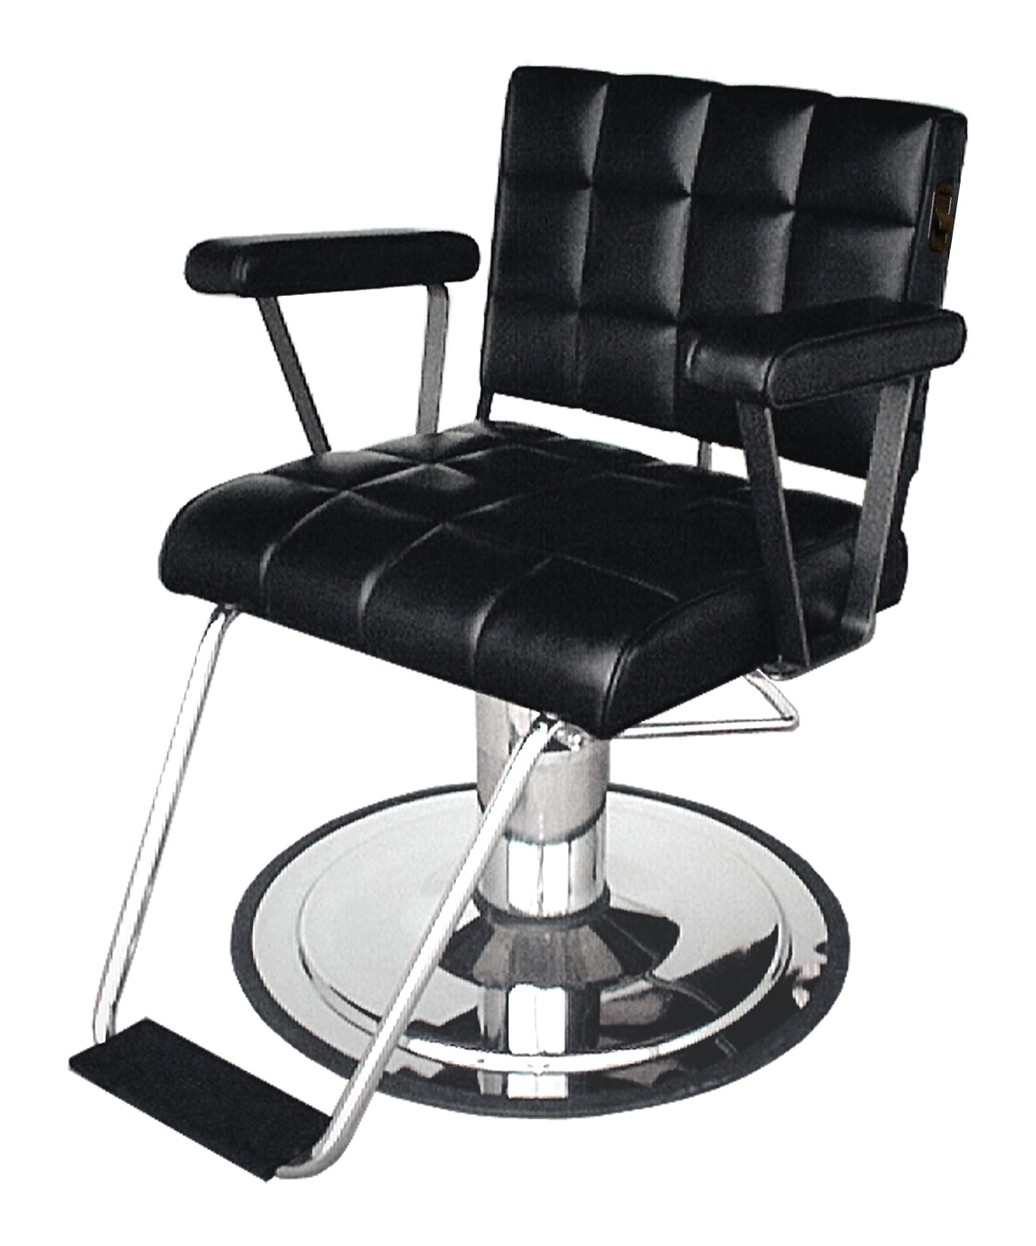 all purpose salon chair aluminum folding lawn chairs hackney with recline optional headrest